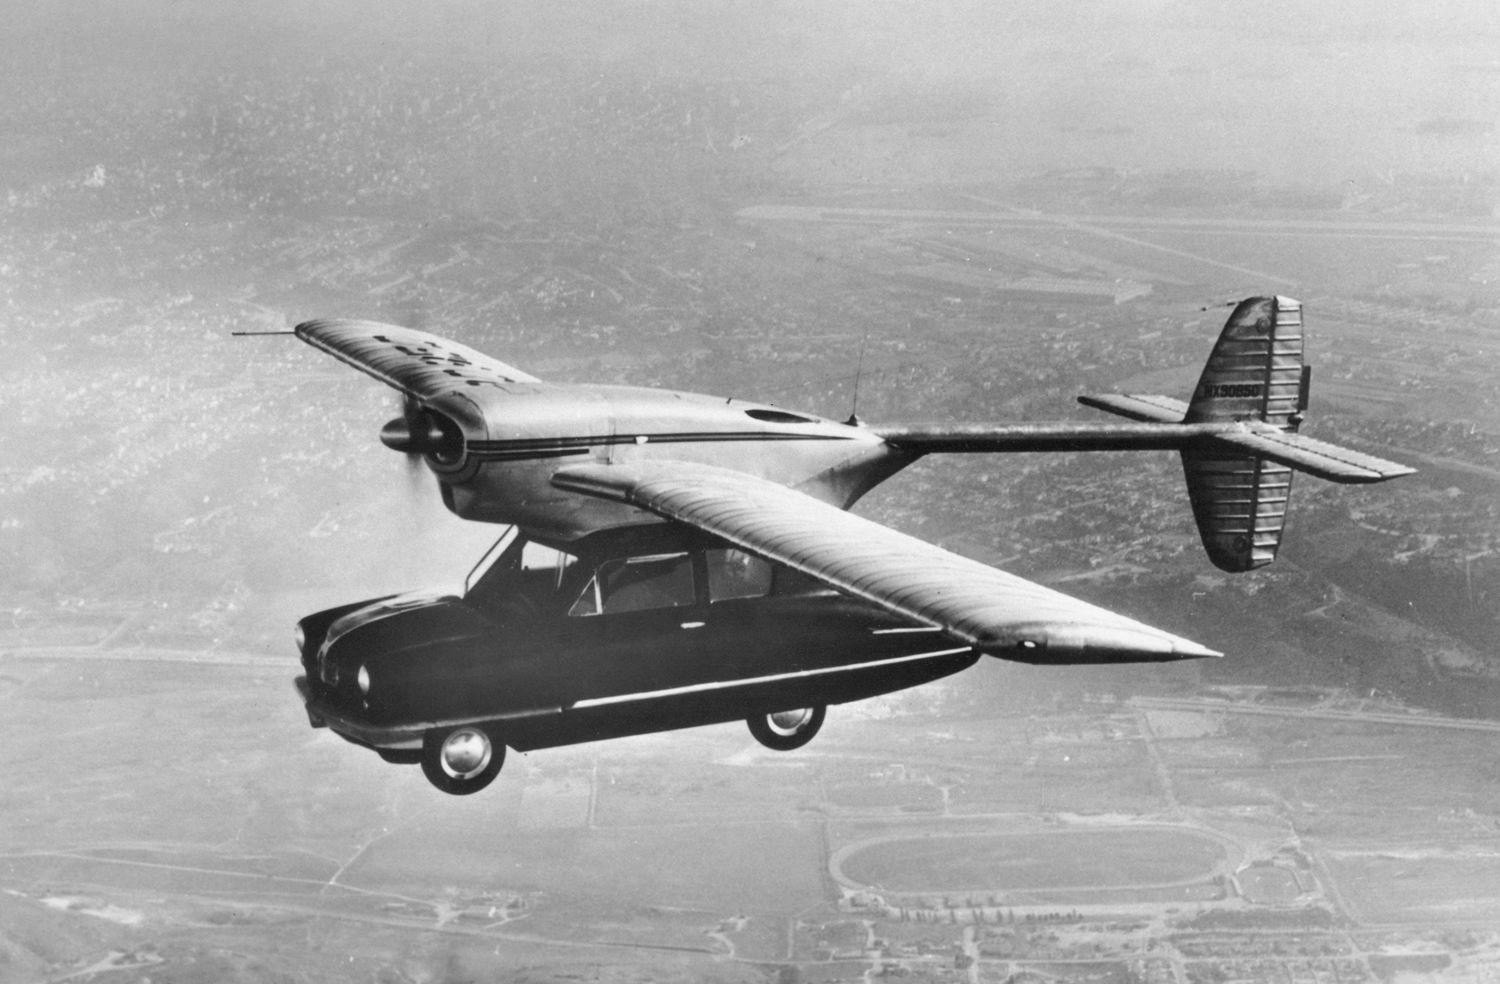 Flying cars: Waitingin the wings or poised for takeoff? - NBC News.